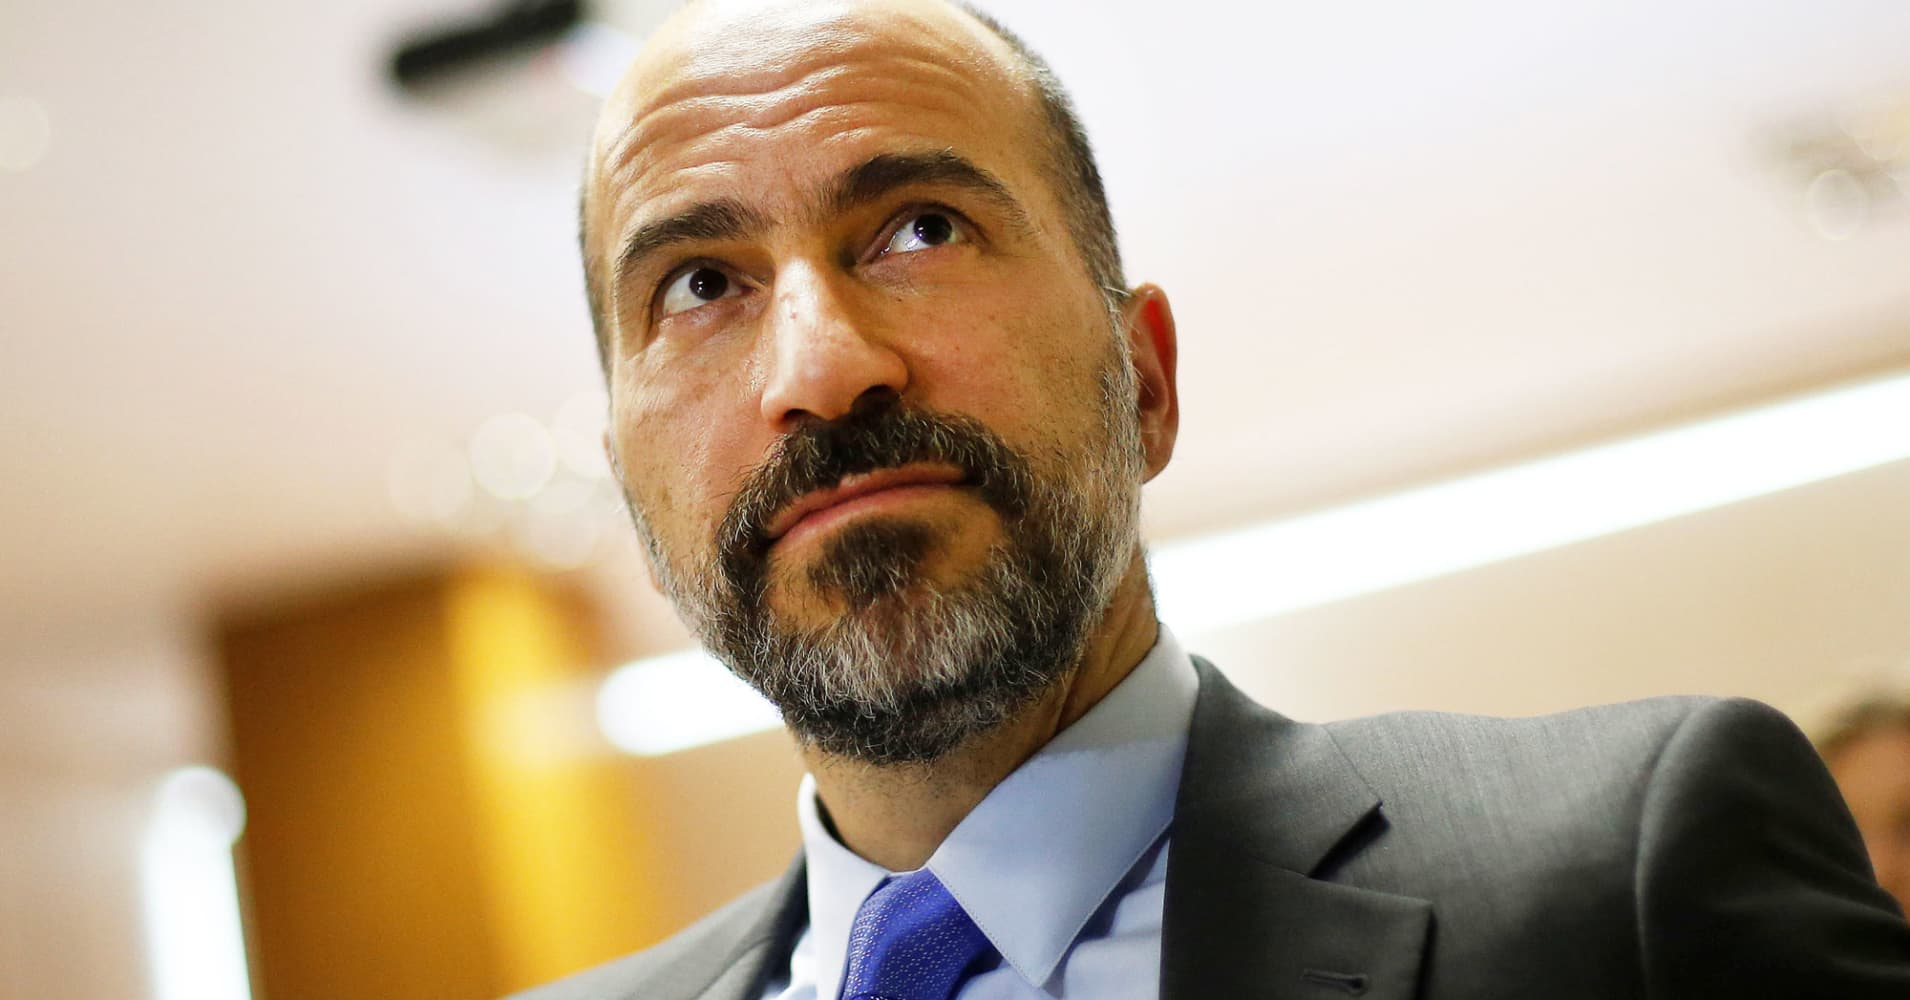 The chief executive of Uber Technologies, Dara Khosrowshahi.